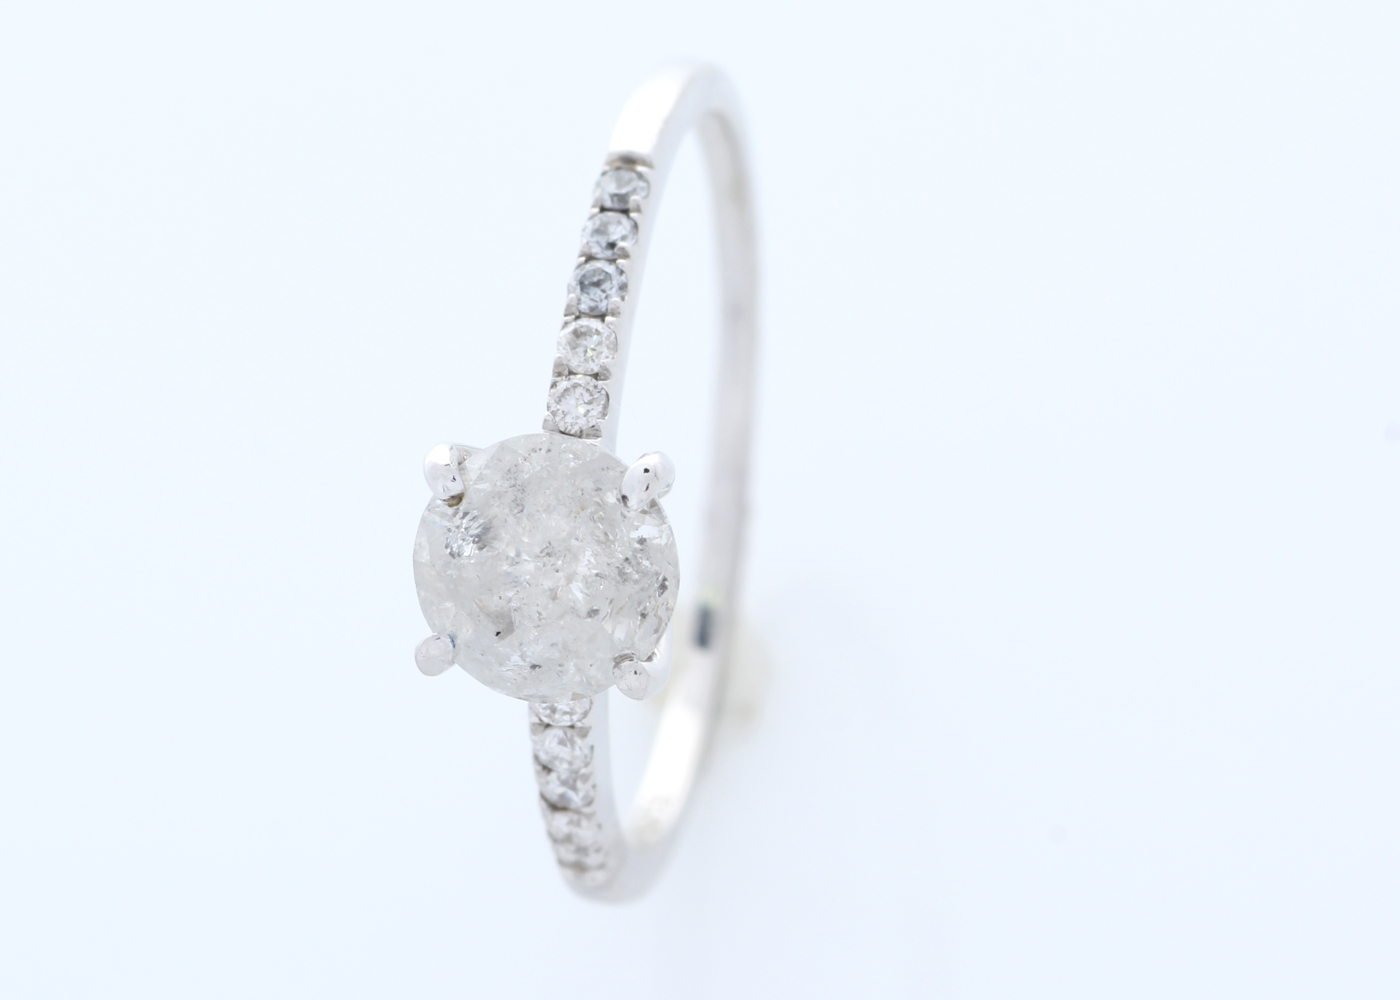 18ct White Gold Stone Set Shoulders Diamond Ring 1.05 Carats - Image 3 of 4